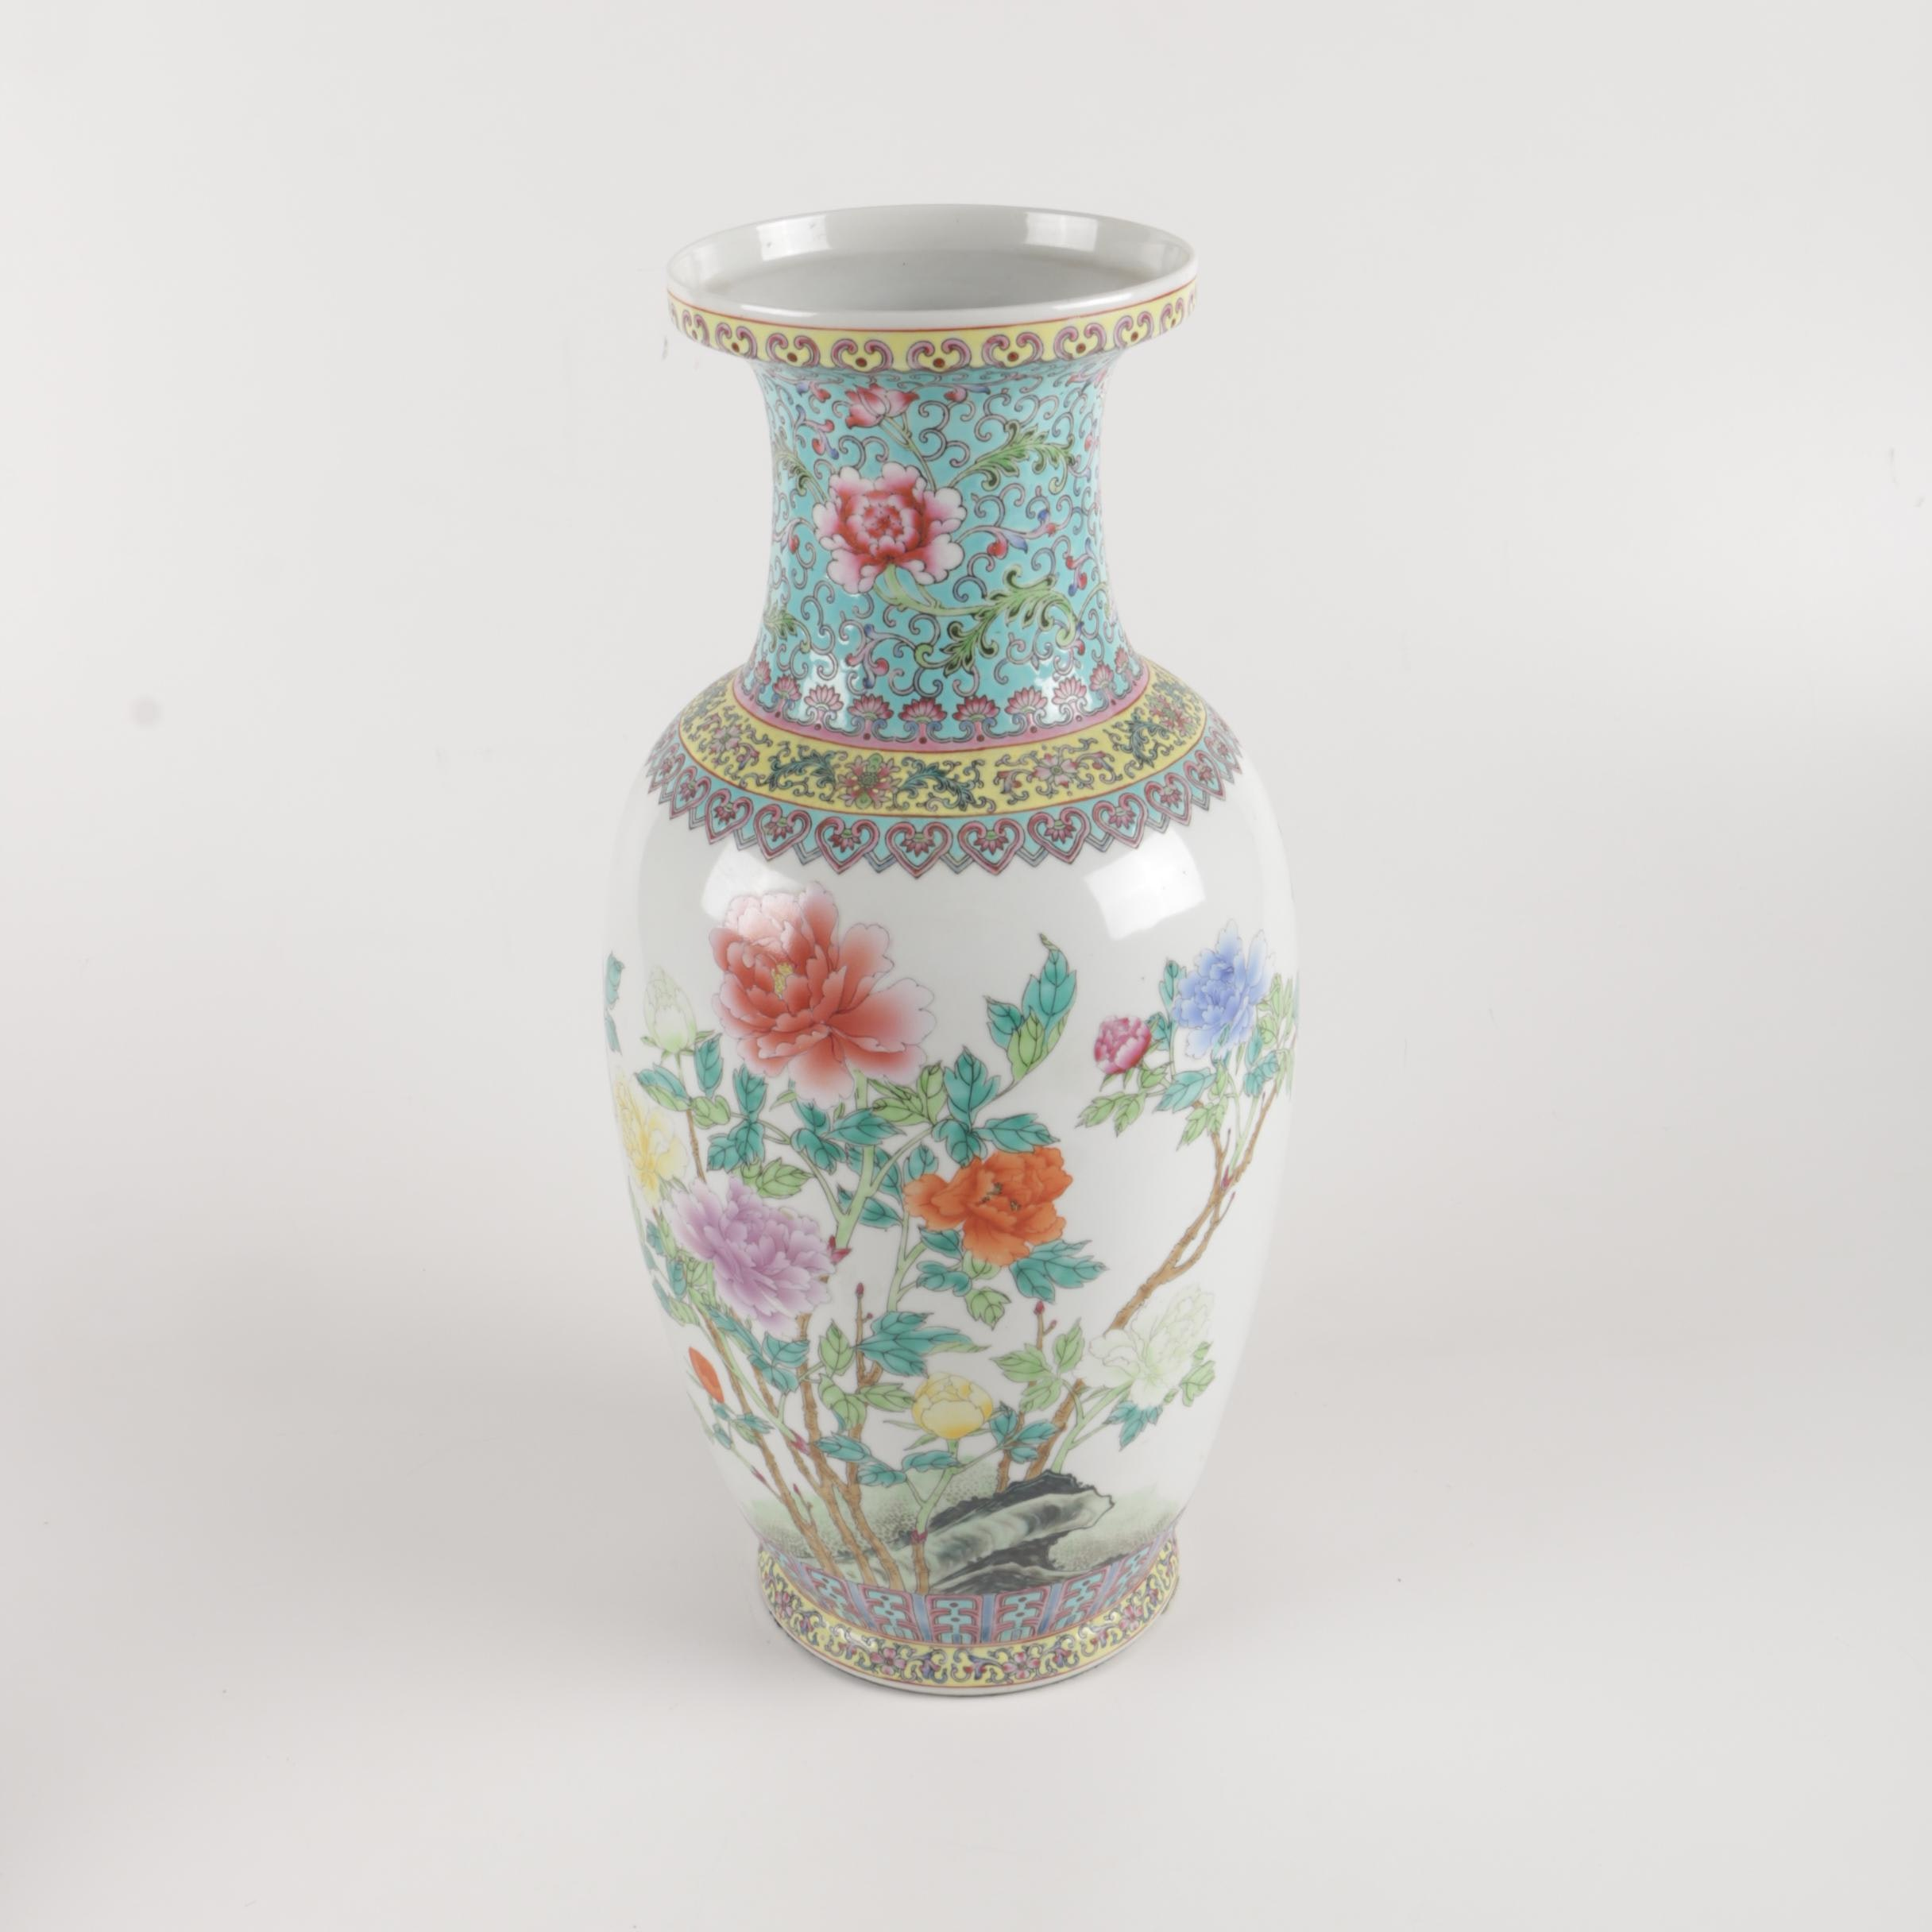 Decorative Chinese Vase with Poetry Passage